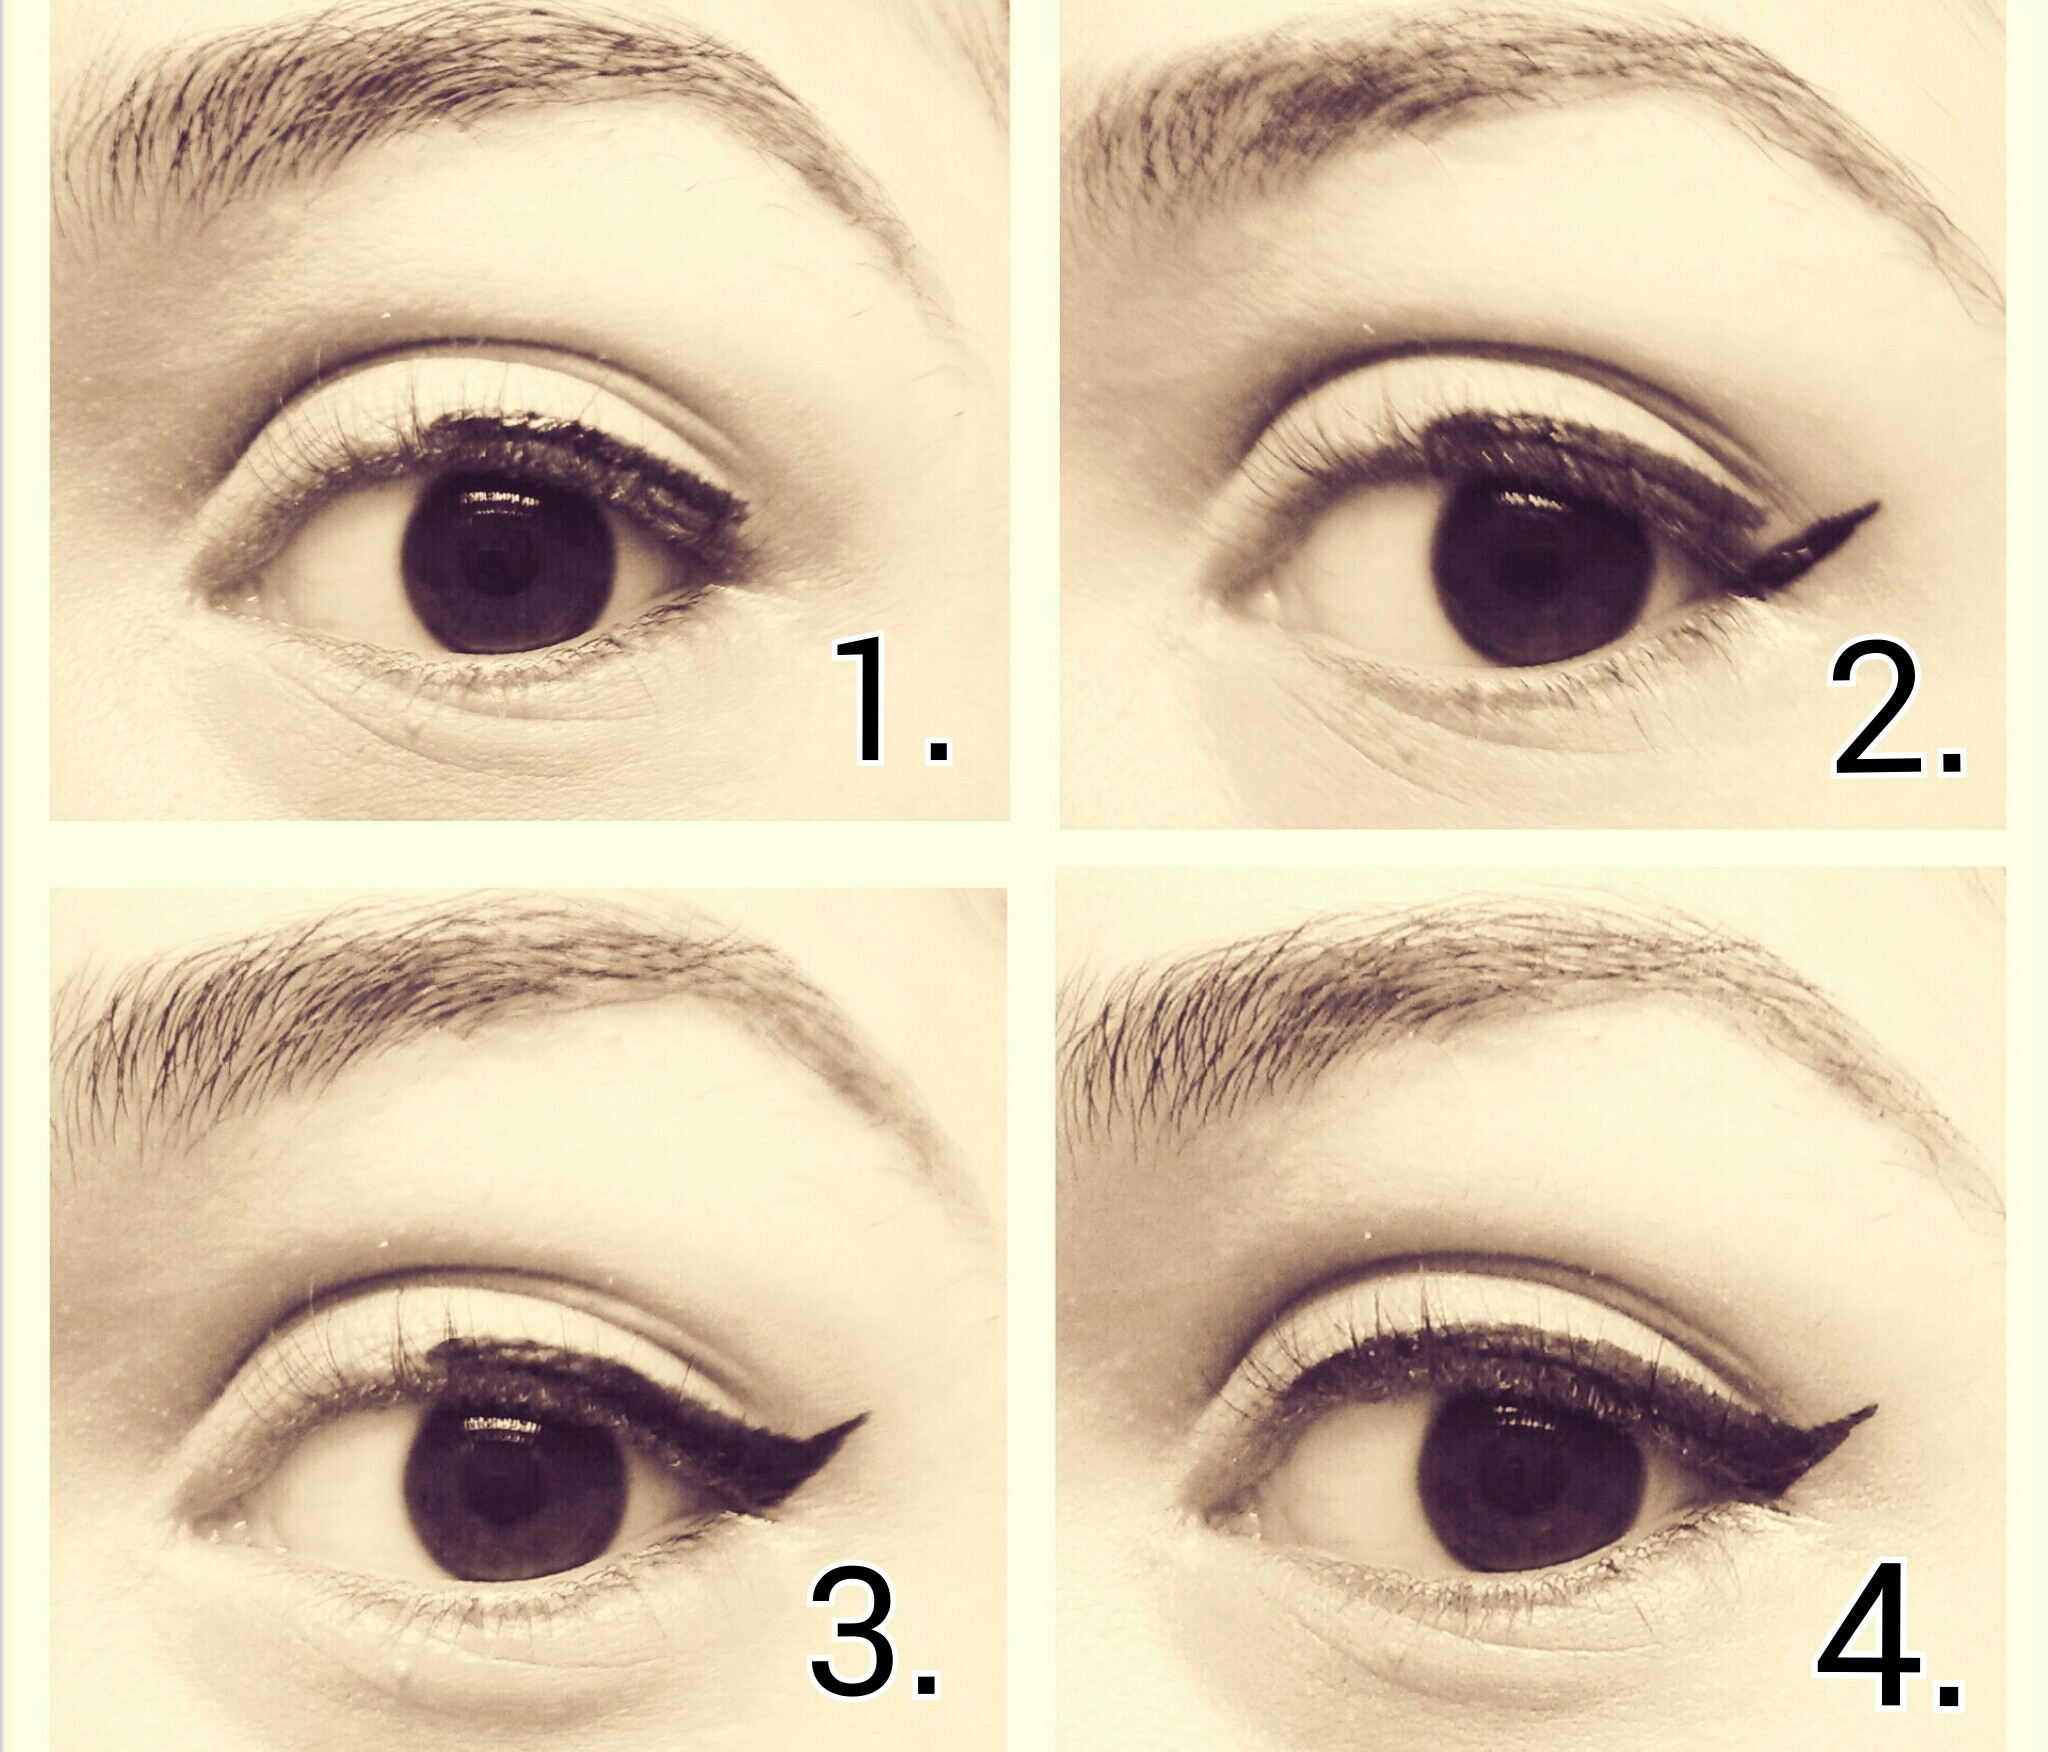 How To Draw A Cat Eye Makeup Step By